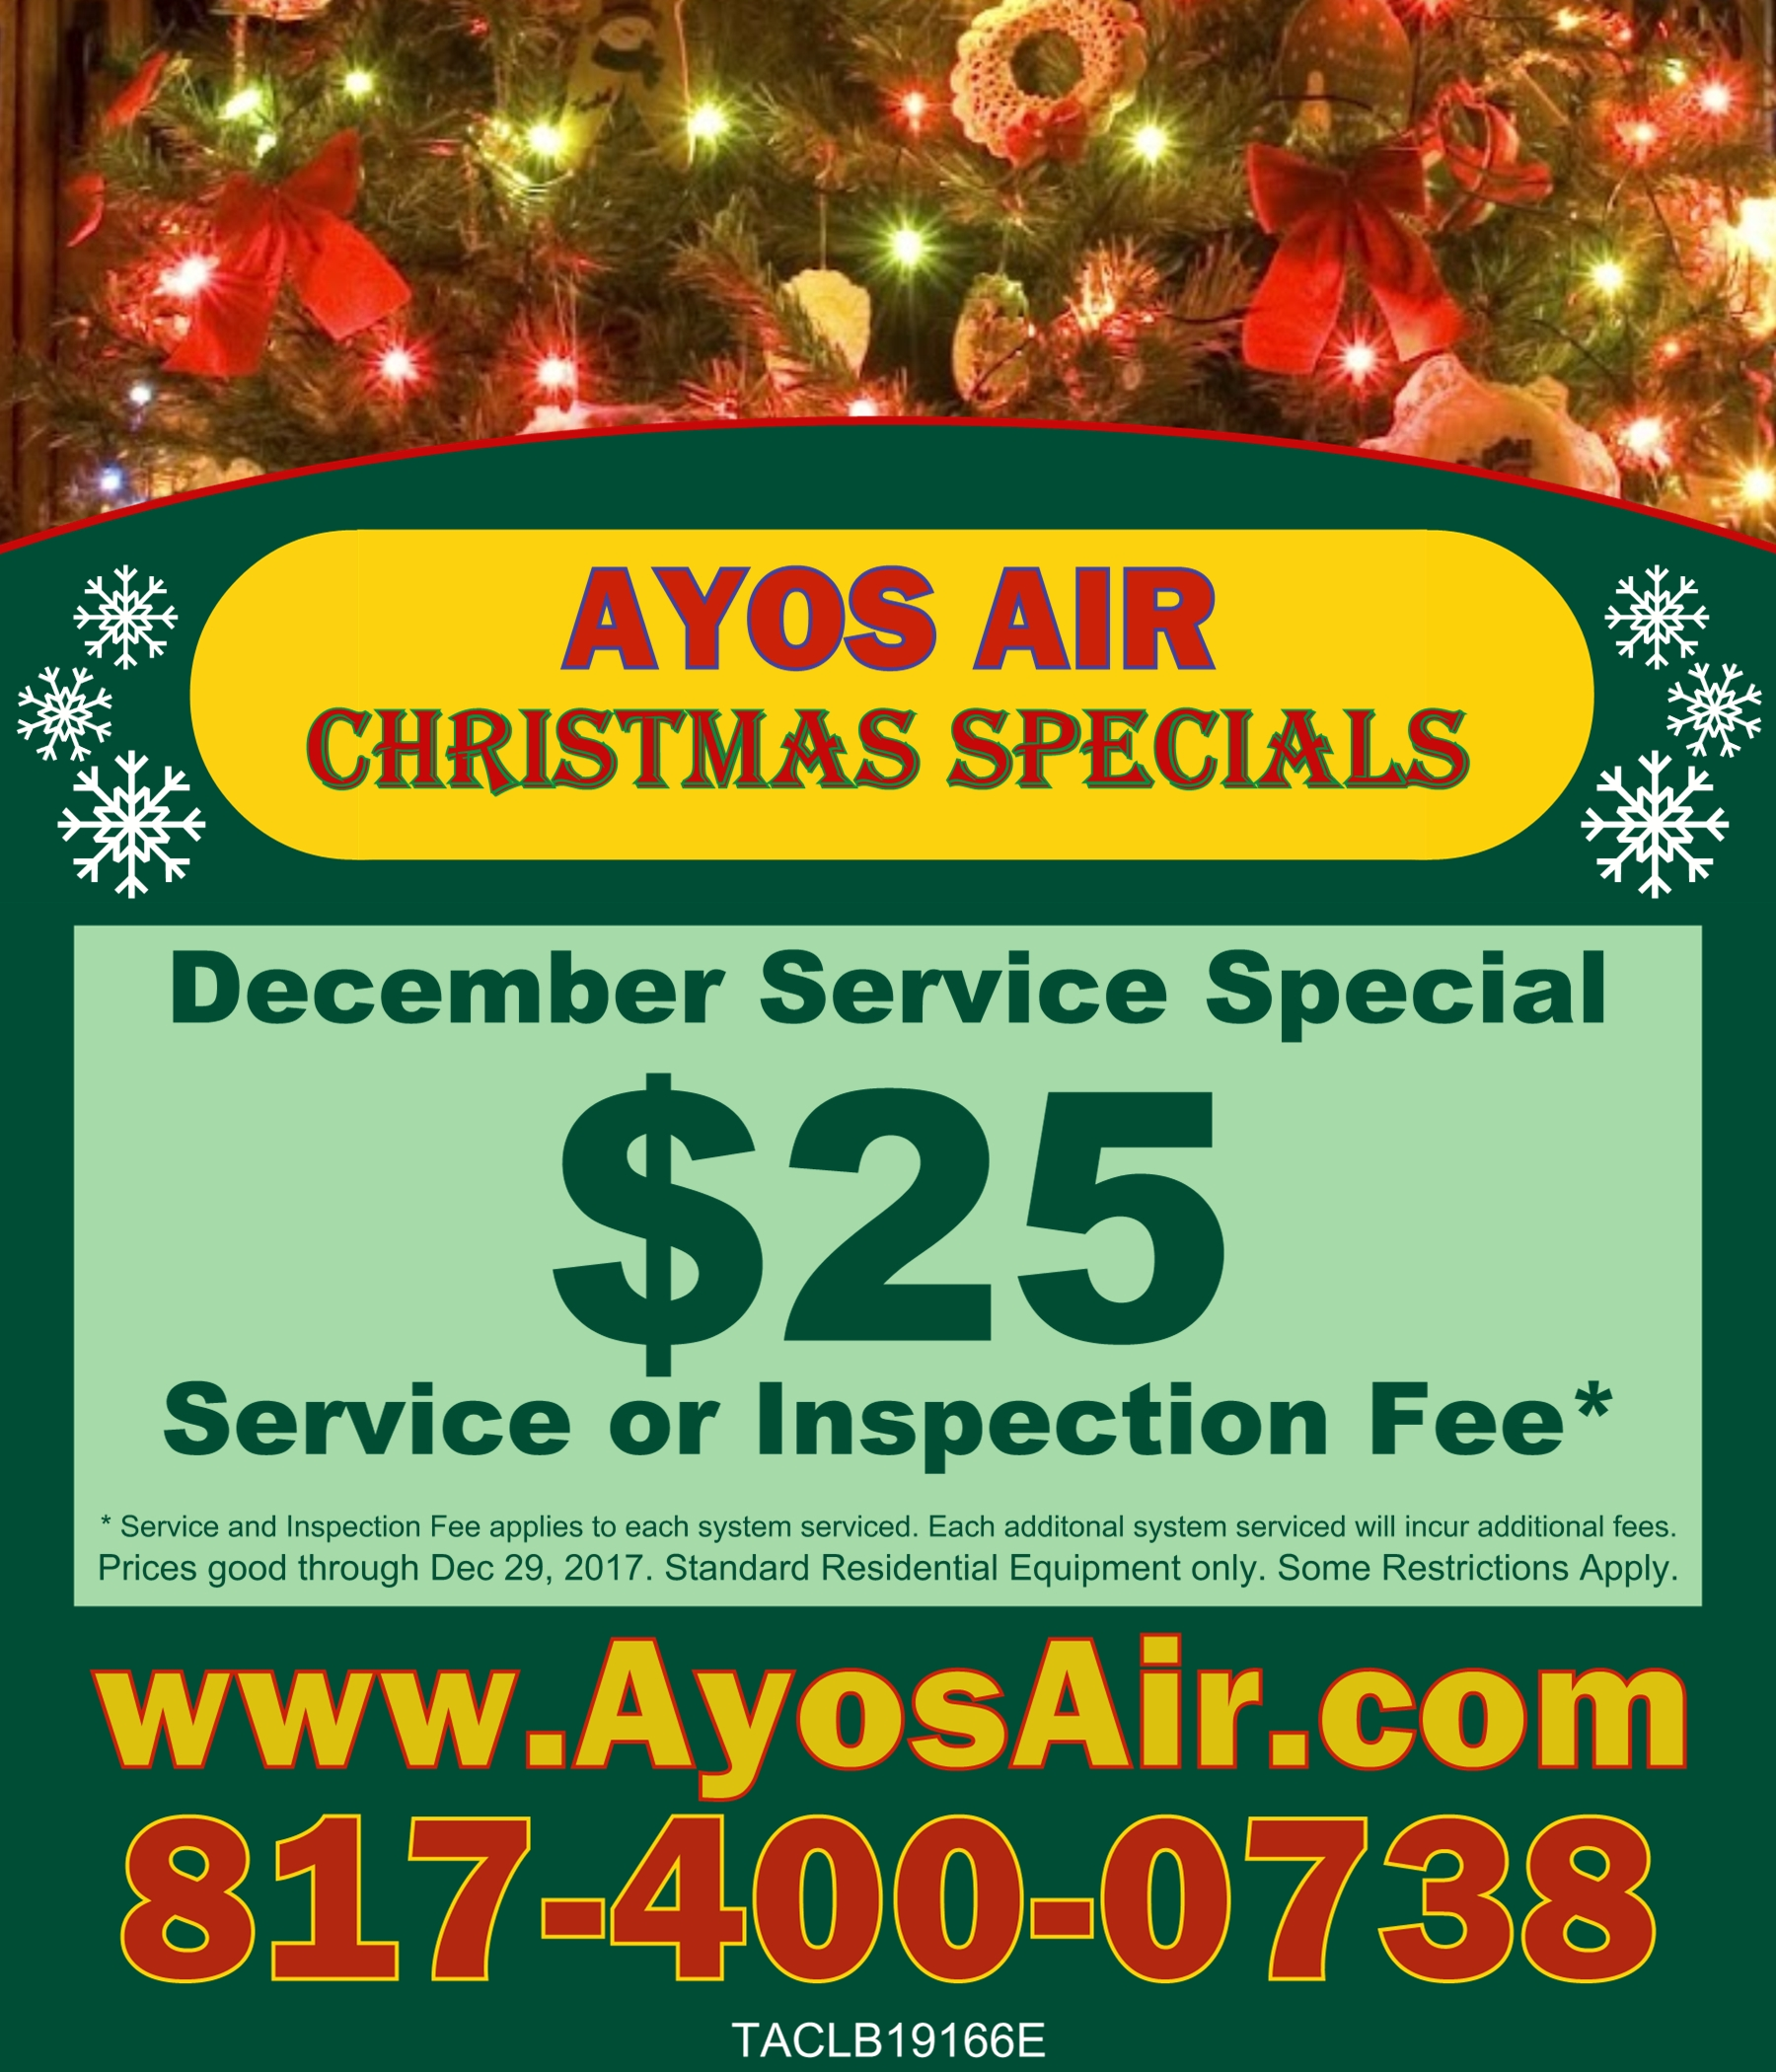 Christmas Service Special with info